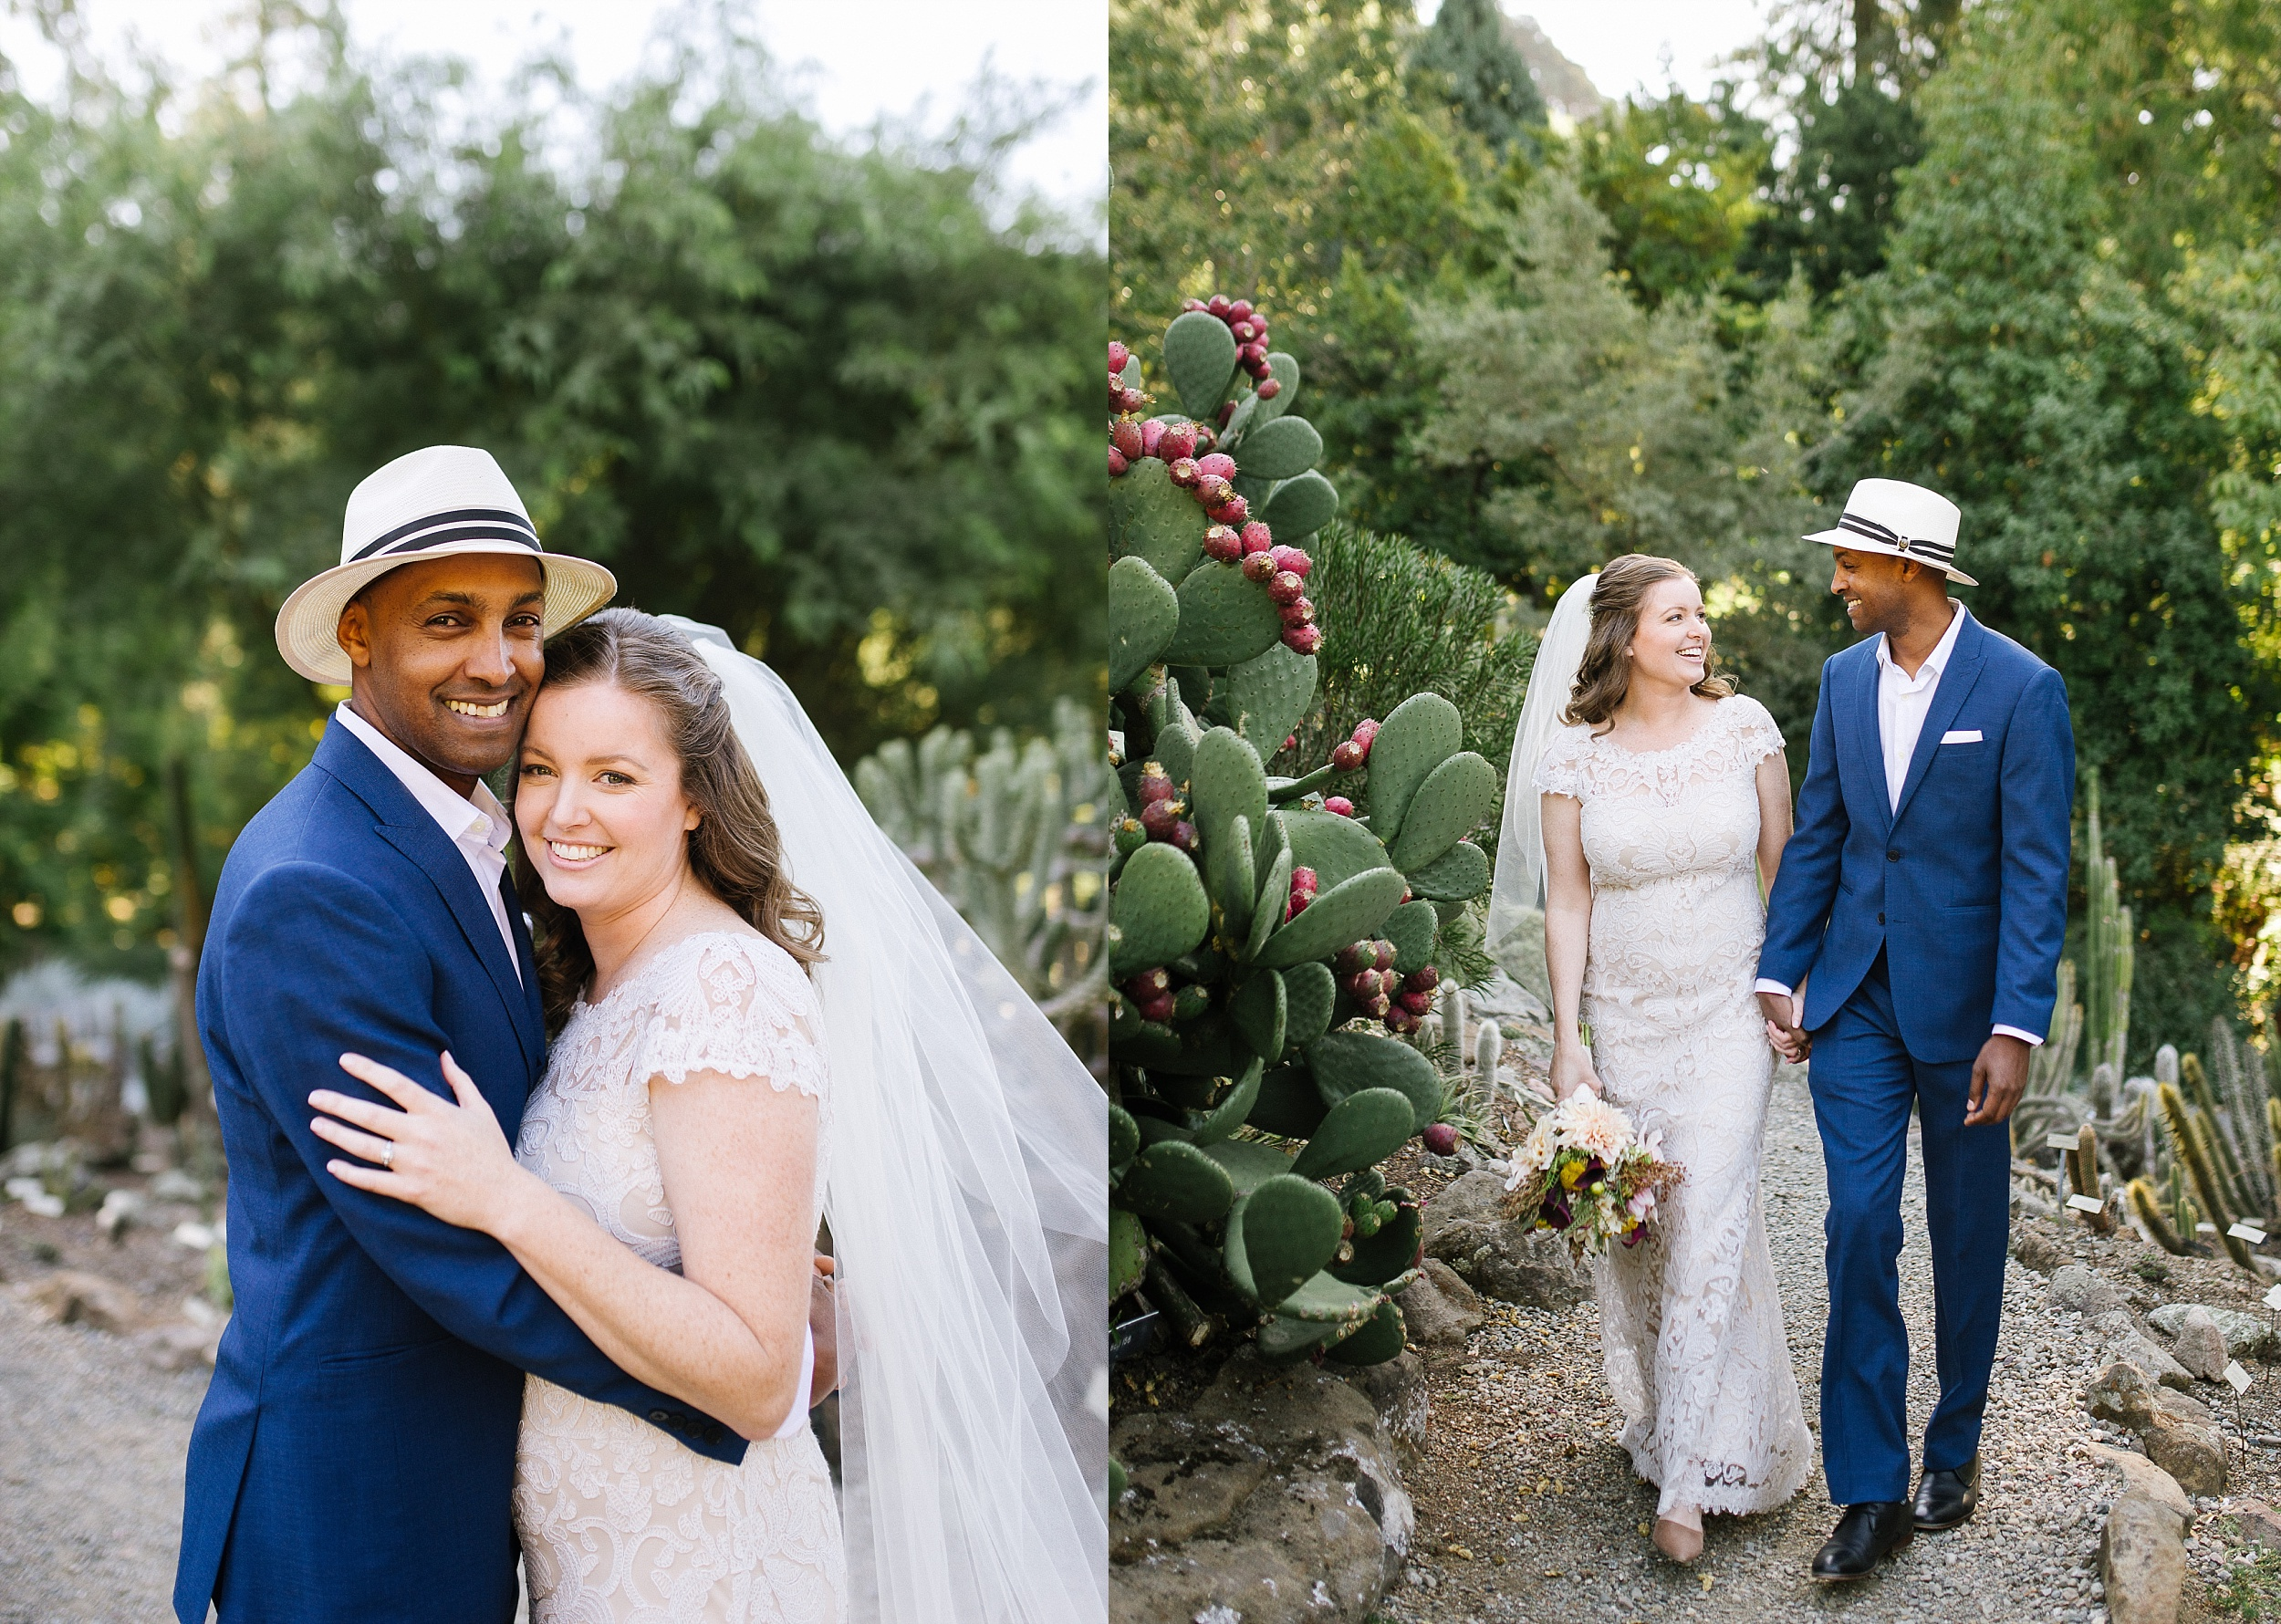 ucberkeley_botanical_redwoods_outdoor_wedding_jennyrez_cdp_0007.jpg